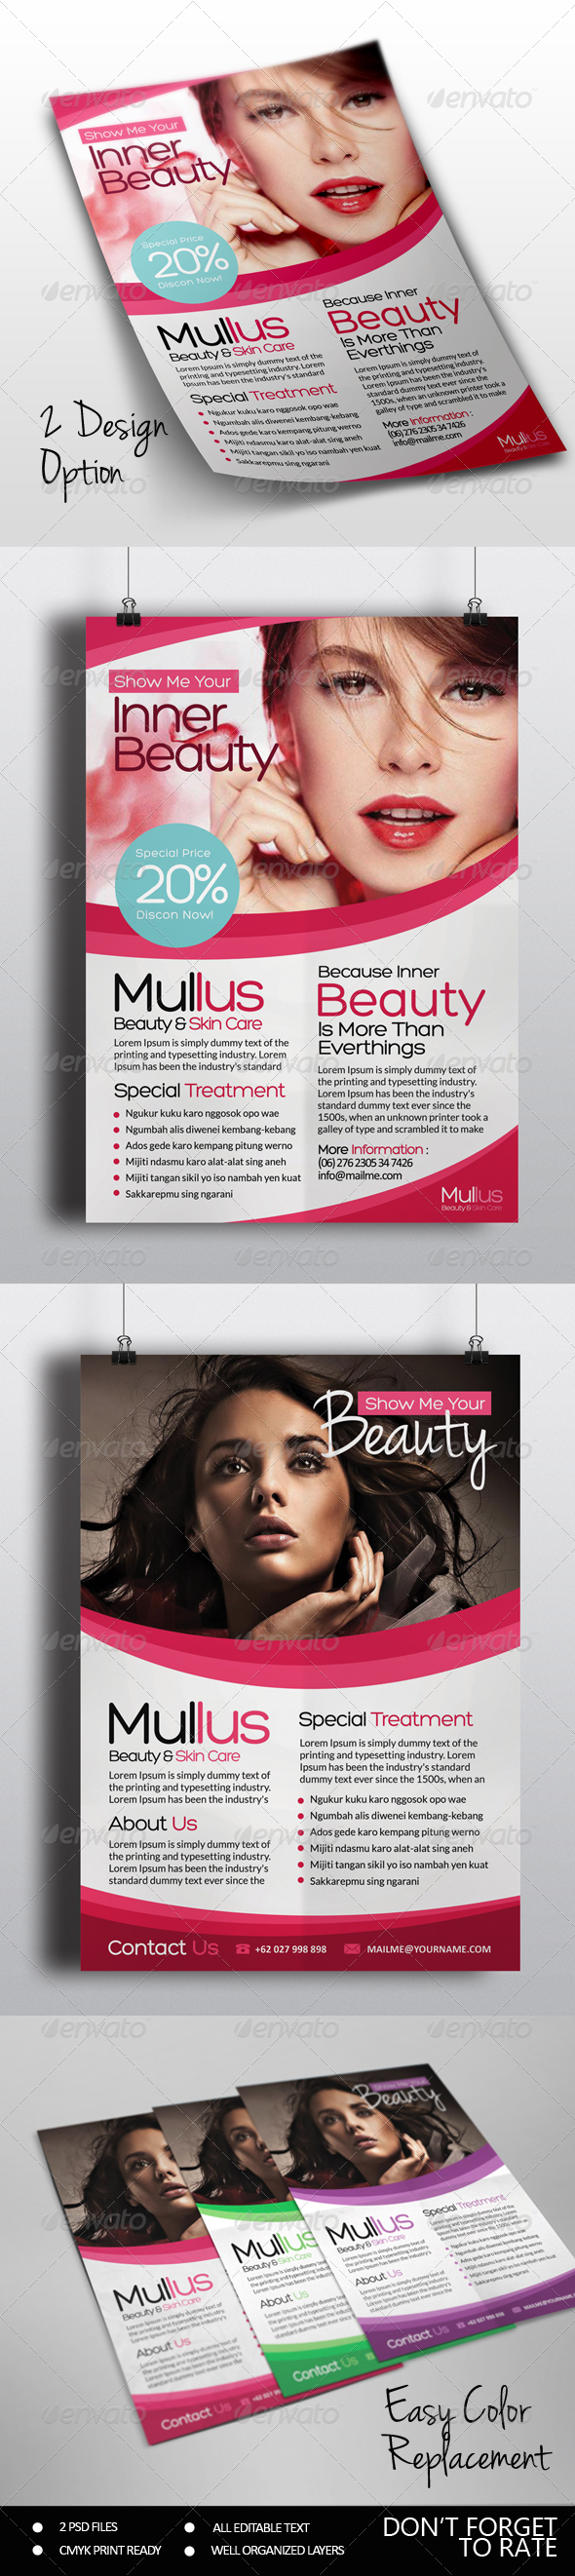 GraphicRiver Beauty Care Flyer 7400173